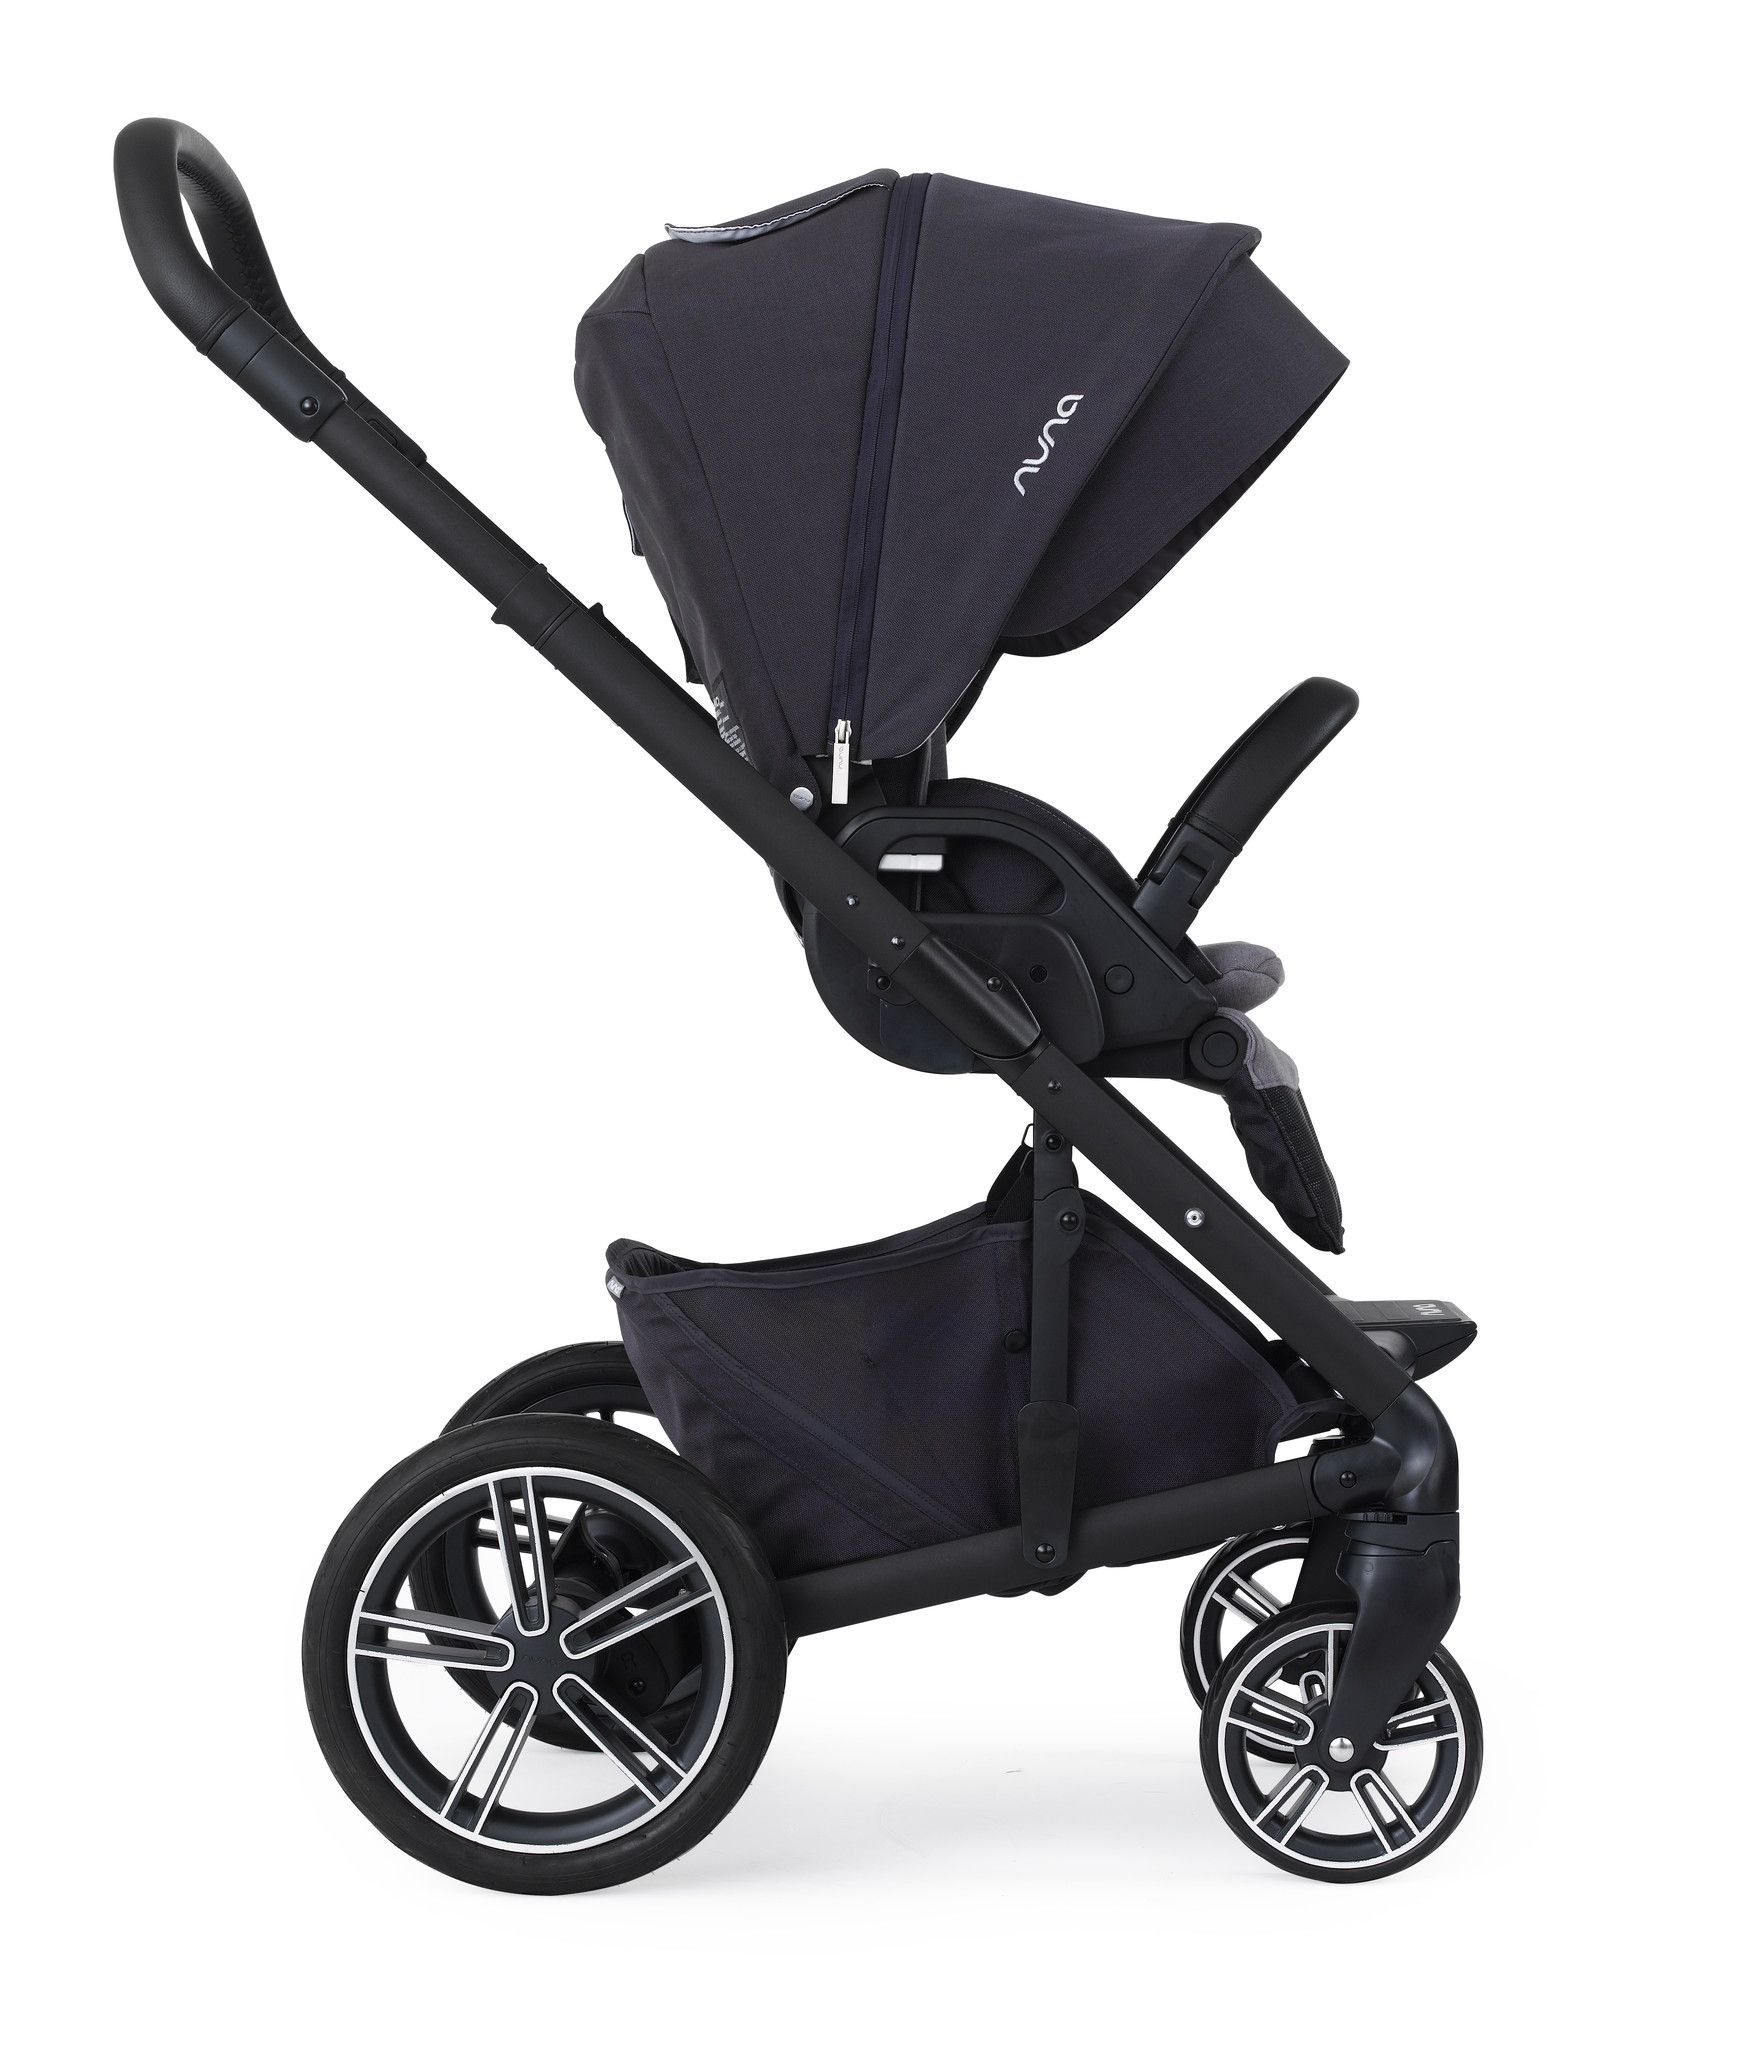 Nuna JETT Collection Travel System Stroller Bassinet and Car Seat